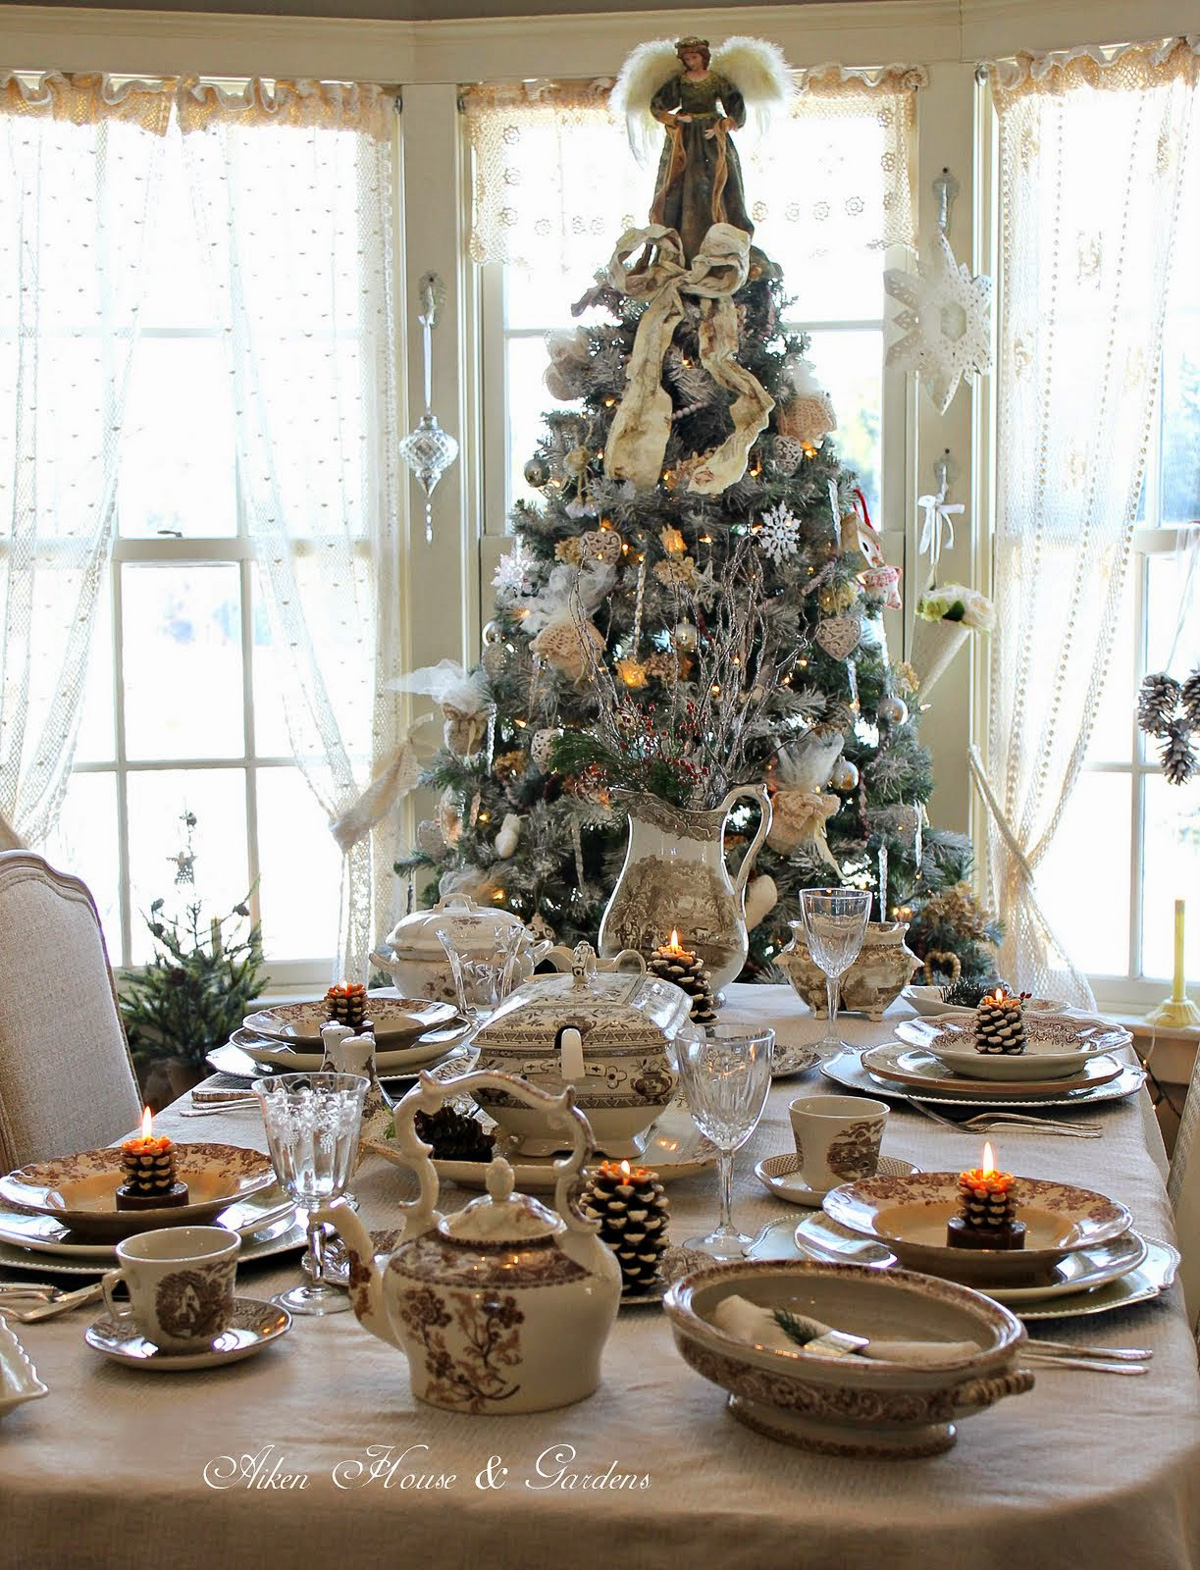 Holiday Table Setting Ideas_Creative Ways To Decorate The Table-14